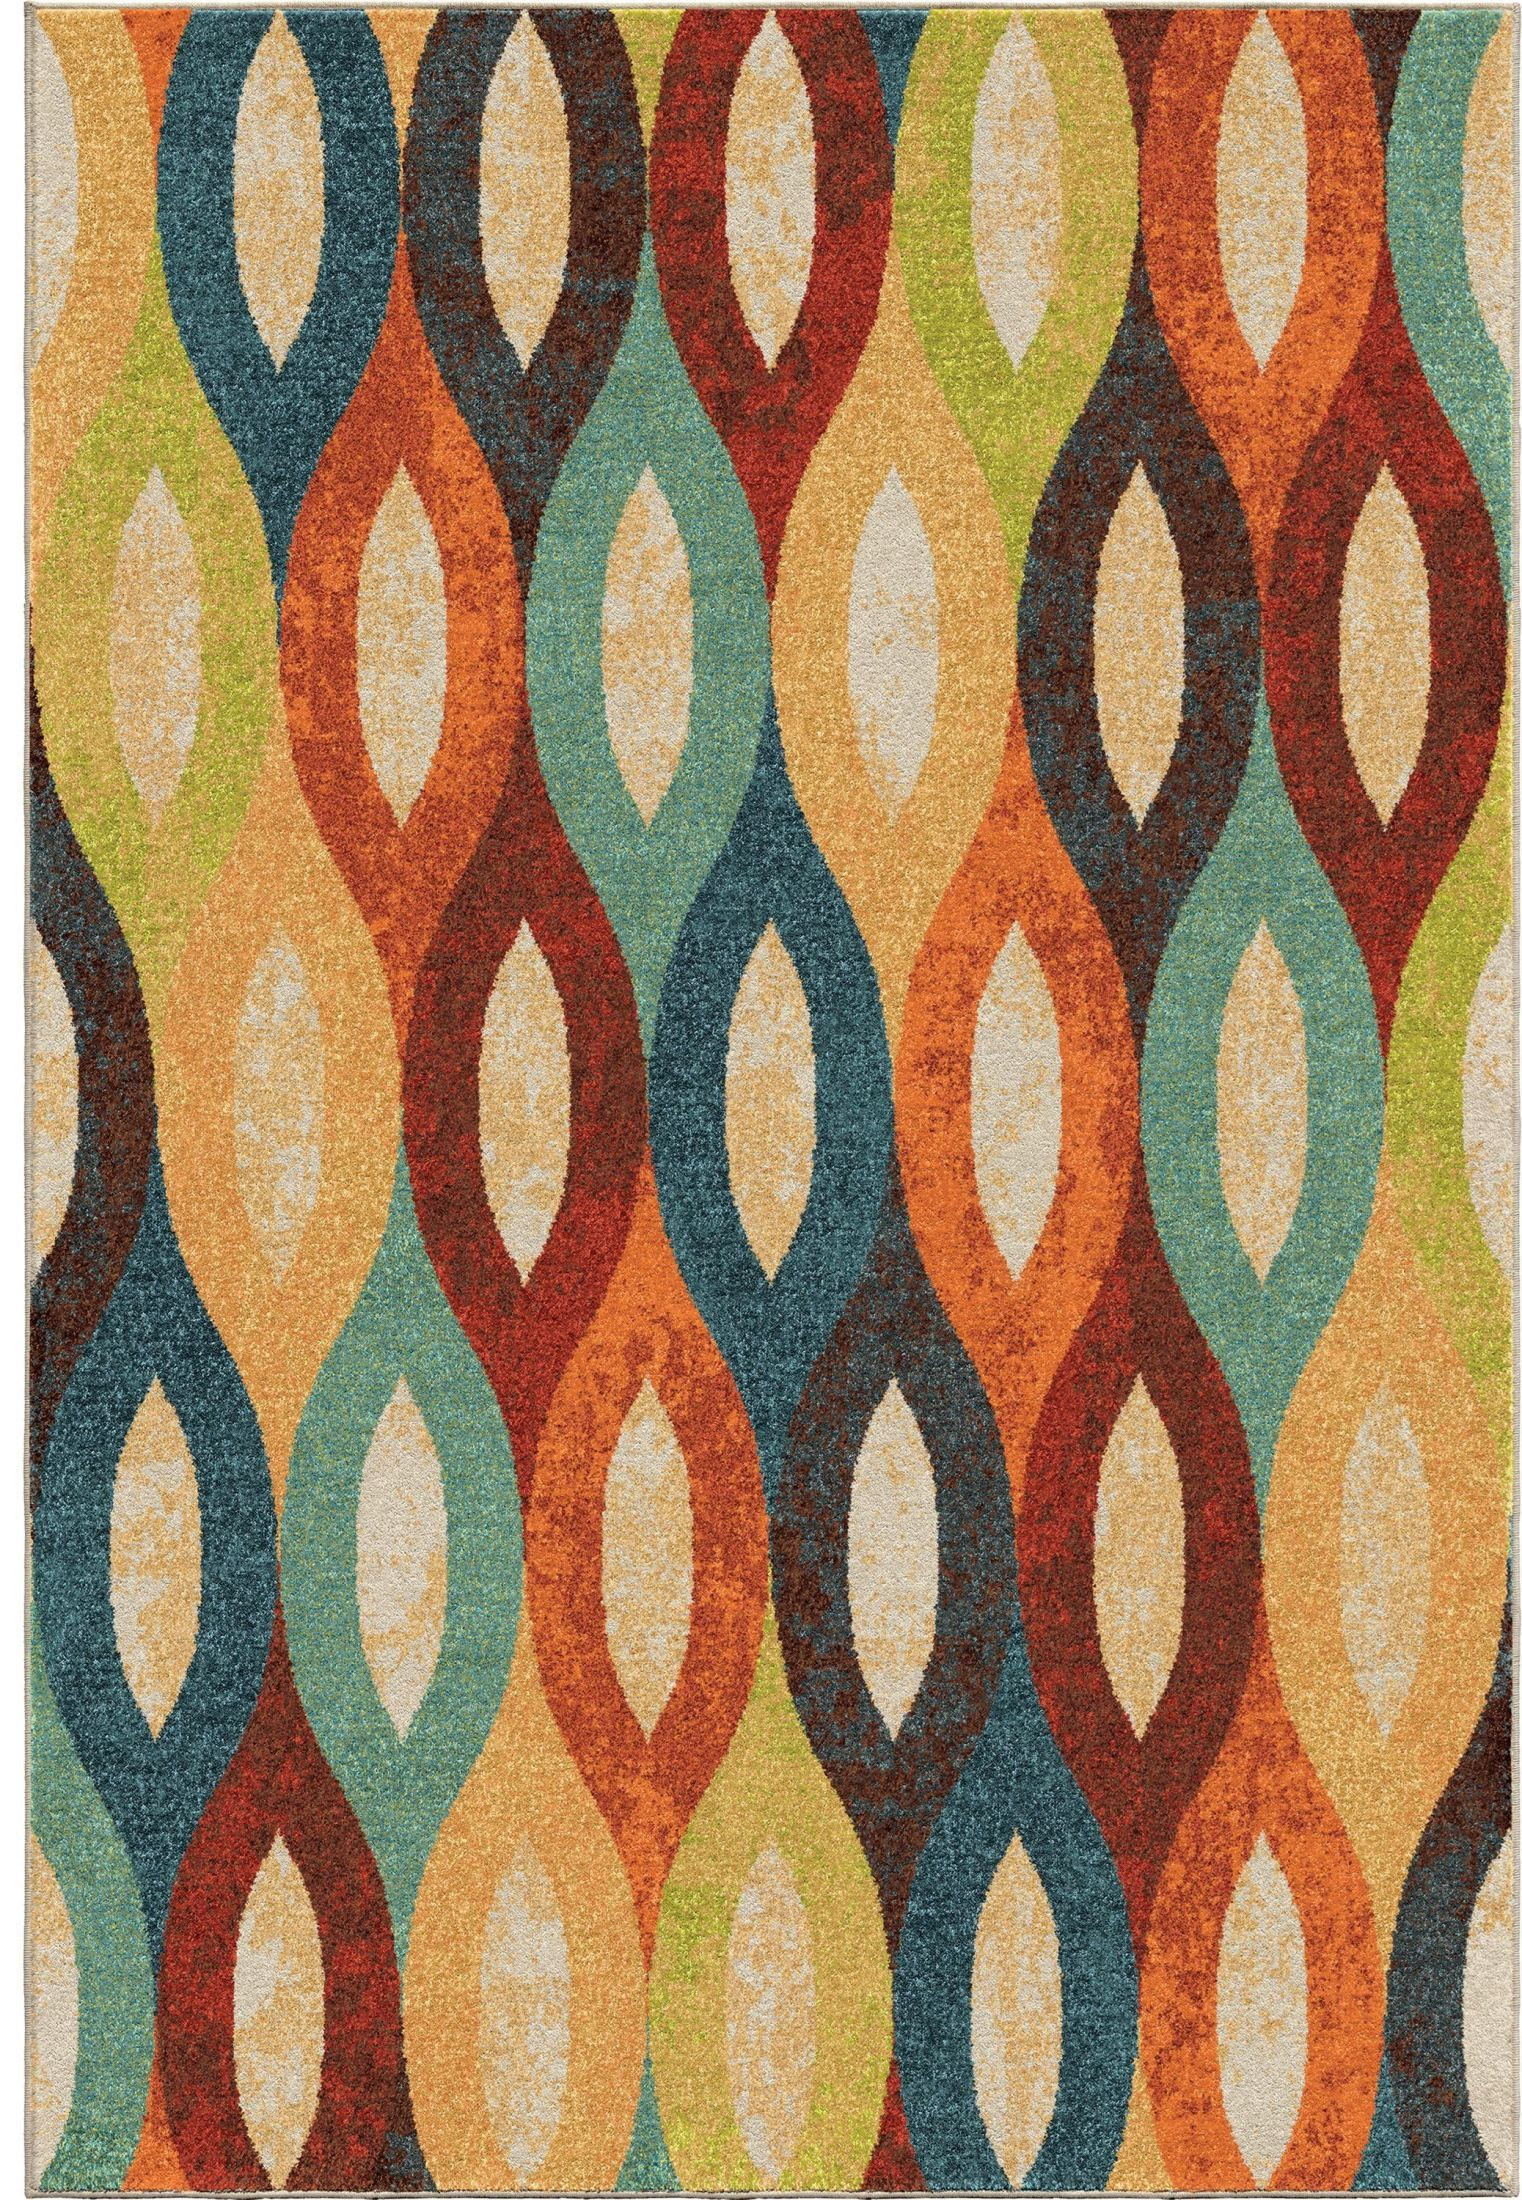 Spoleto Bright Color Ovals Britwick Multi Large Area Rug